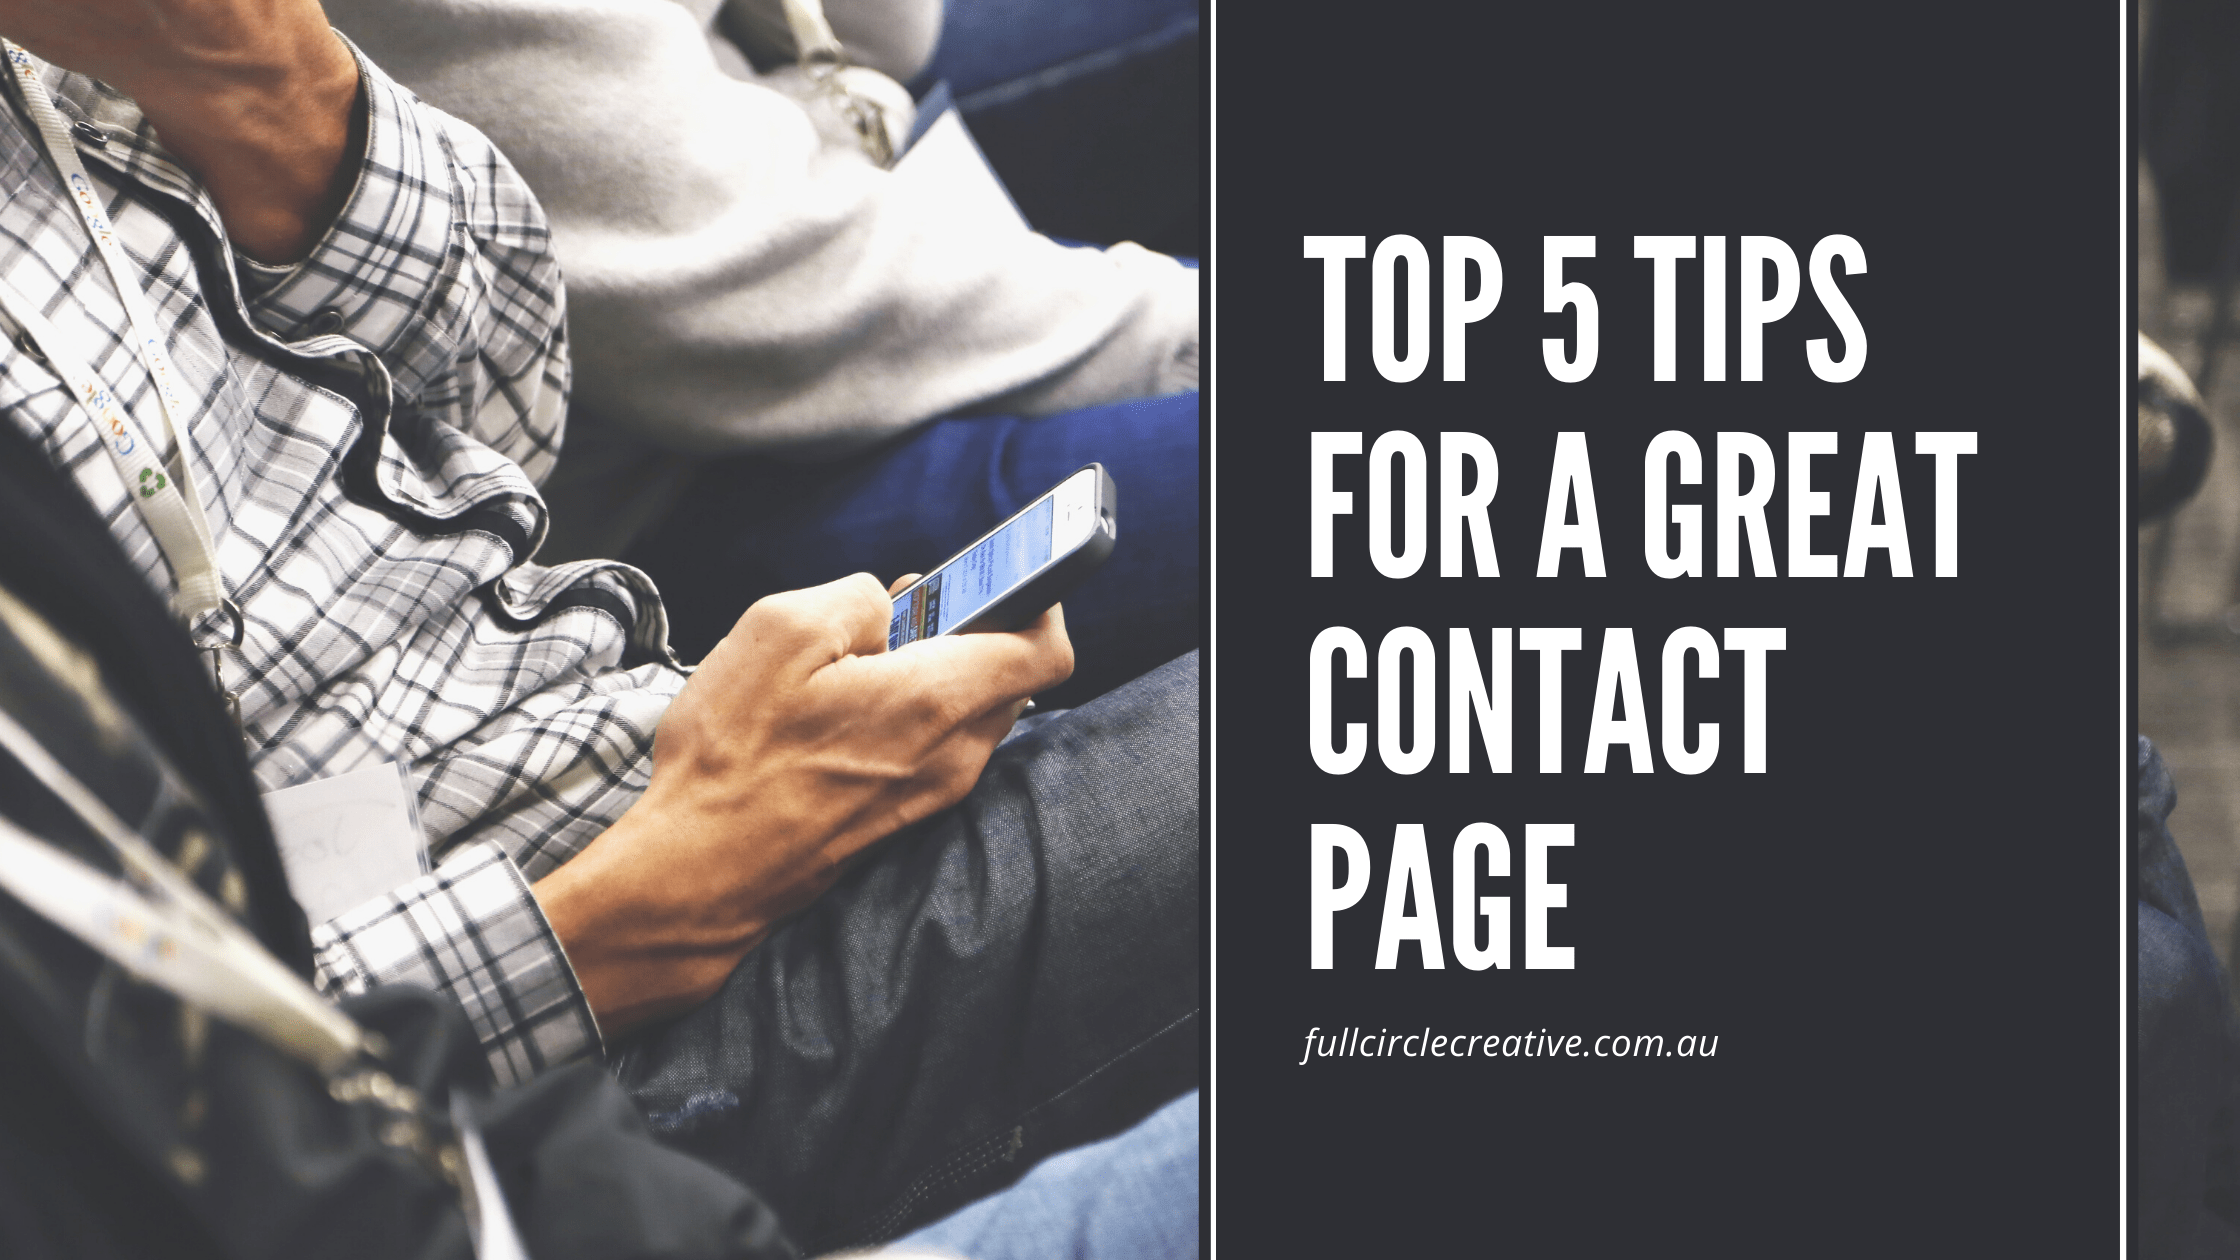 Top 5 tips for a great contact page